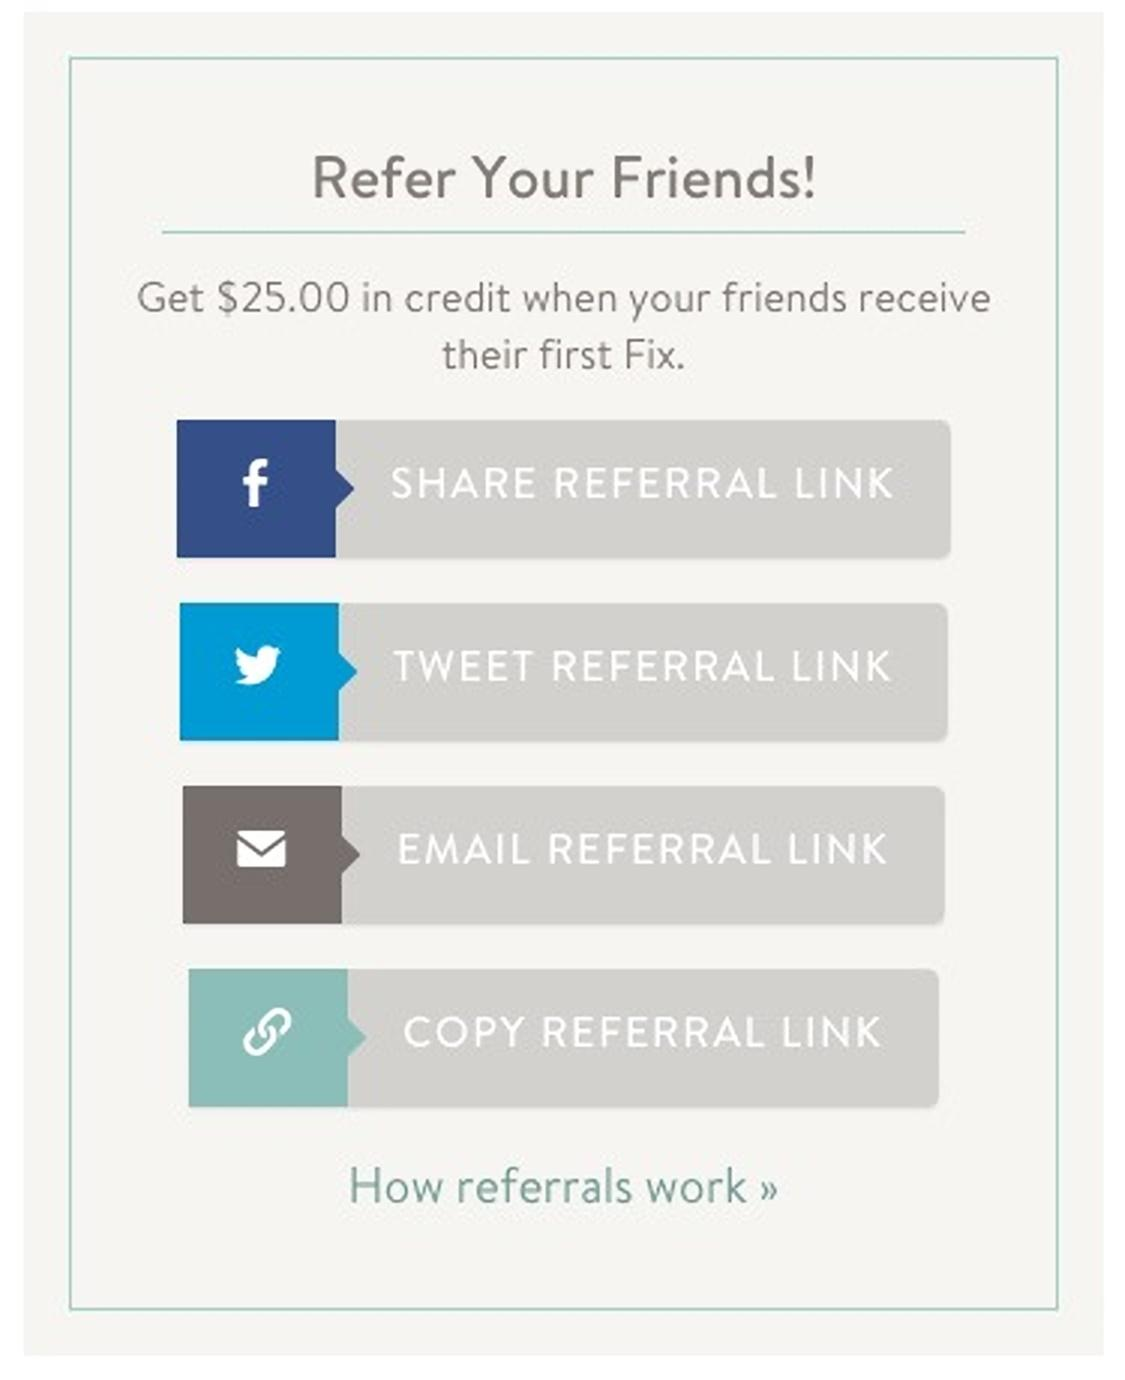 Popular clothing subscription service Stitch Fix does a great job of encouraging their current subscribers to refer their friends by providing them an easy social sharing option.